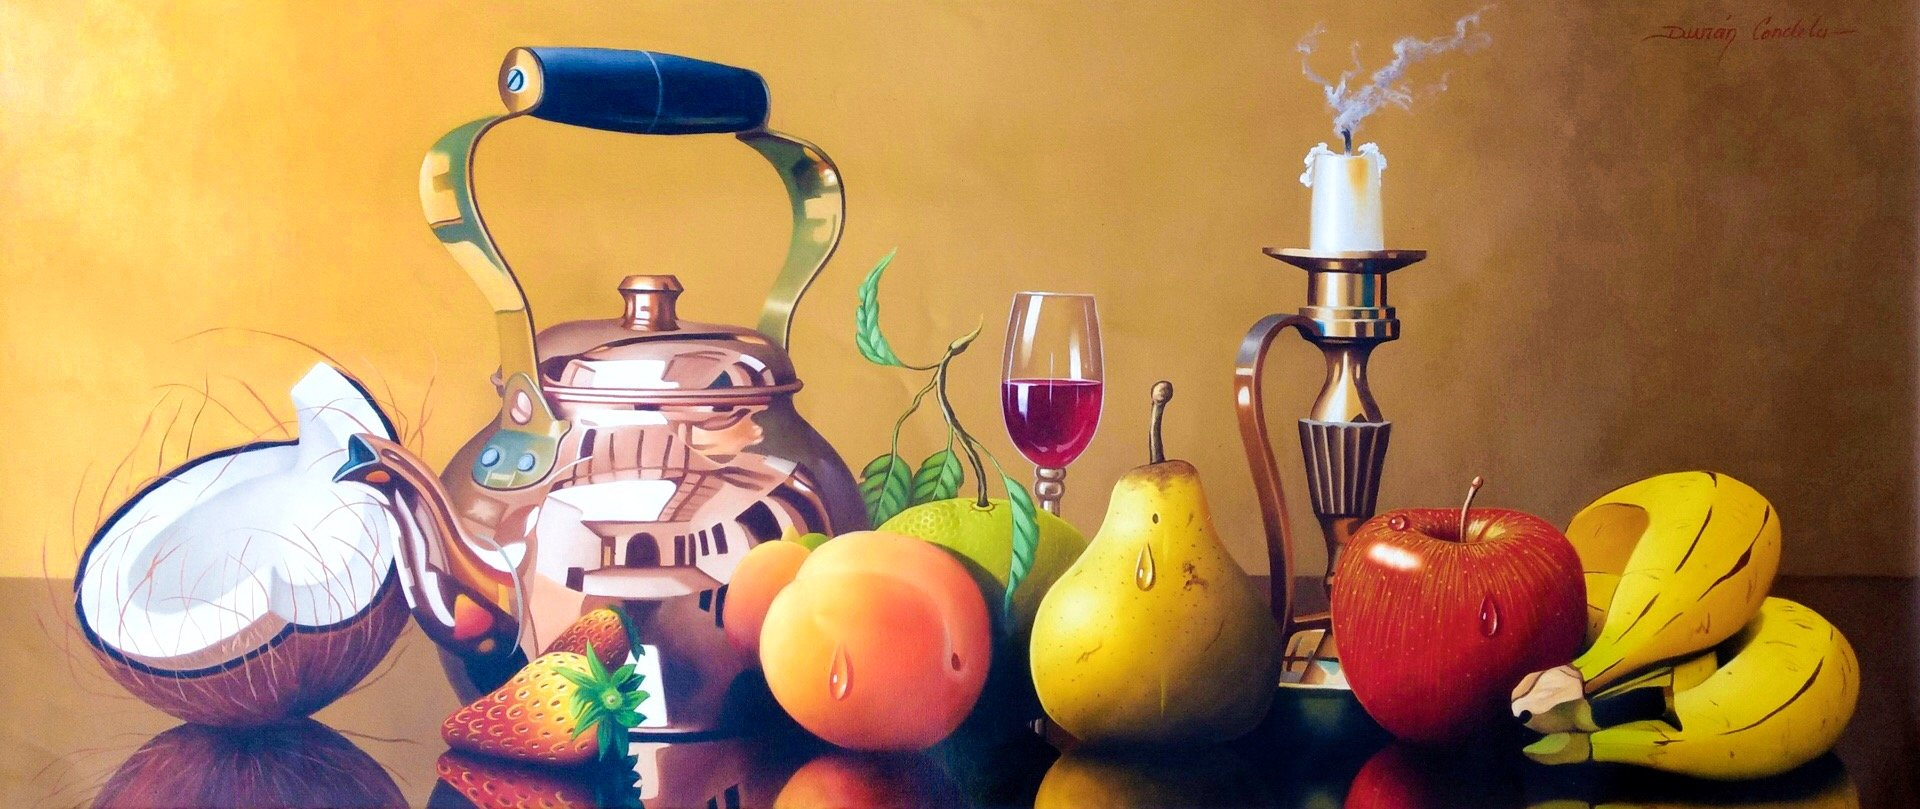 Original Still Life Oil Painting on Canvas depicting fruits, a bronze teapot, wine glass, and a candle.